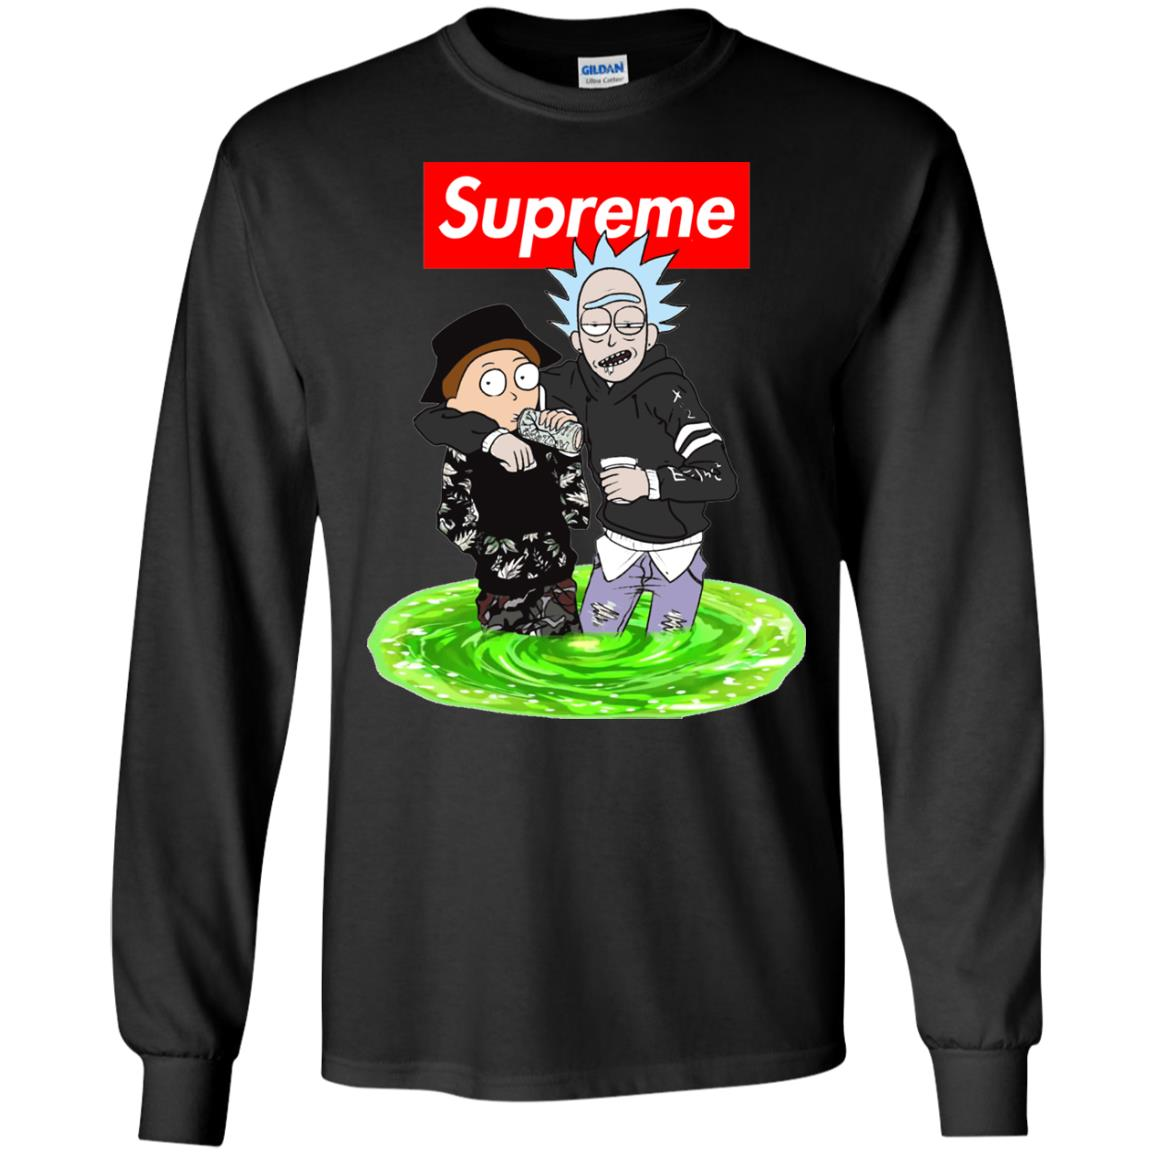 image 2743 - Supreme style Rick and Morty shirt & sweater